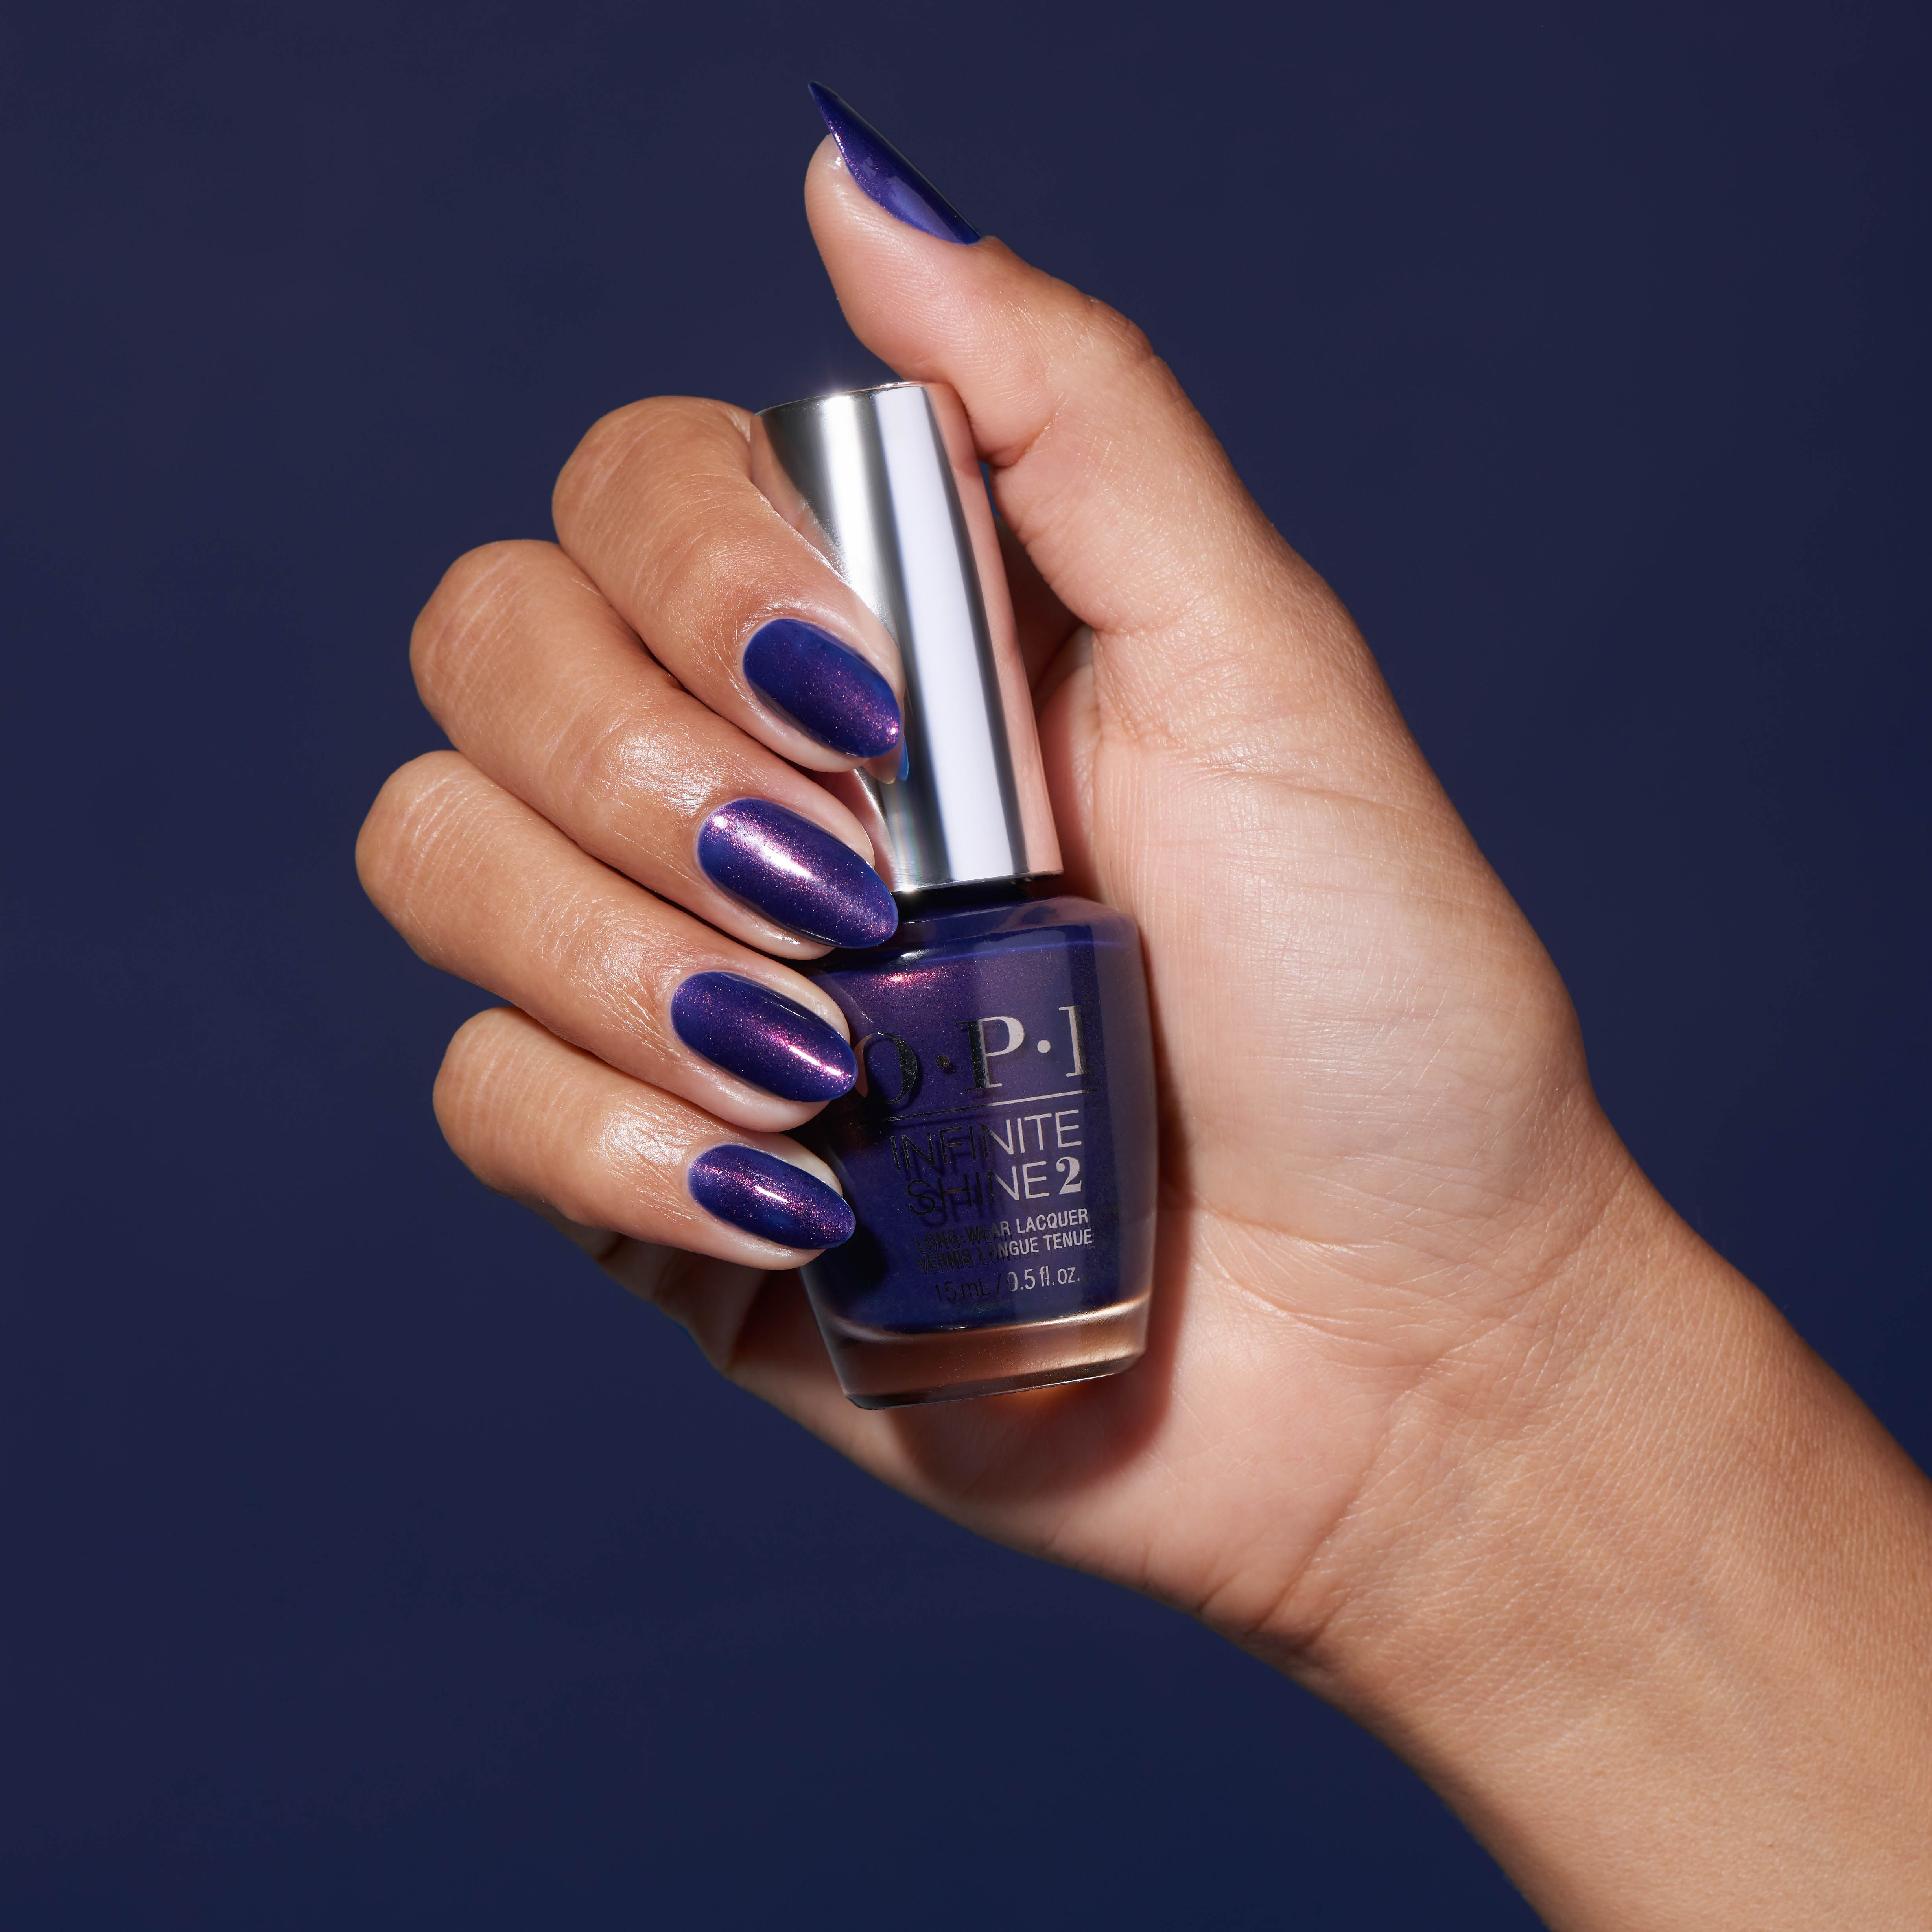 Opi Infinite Shine You Can Count On It Straight From The Midnight Sky This Deep Purple Nail Polish Sets The Stage For An Unforgettable Show Fall Nail Colors Fall Nail Colors 2017 Nail Trends